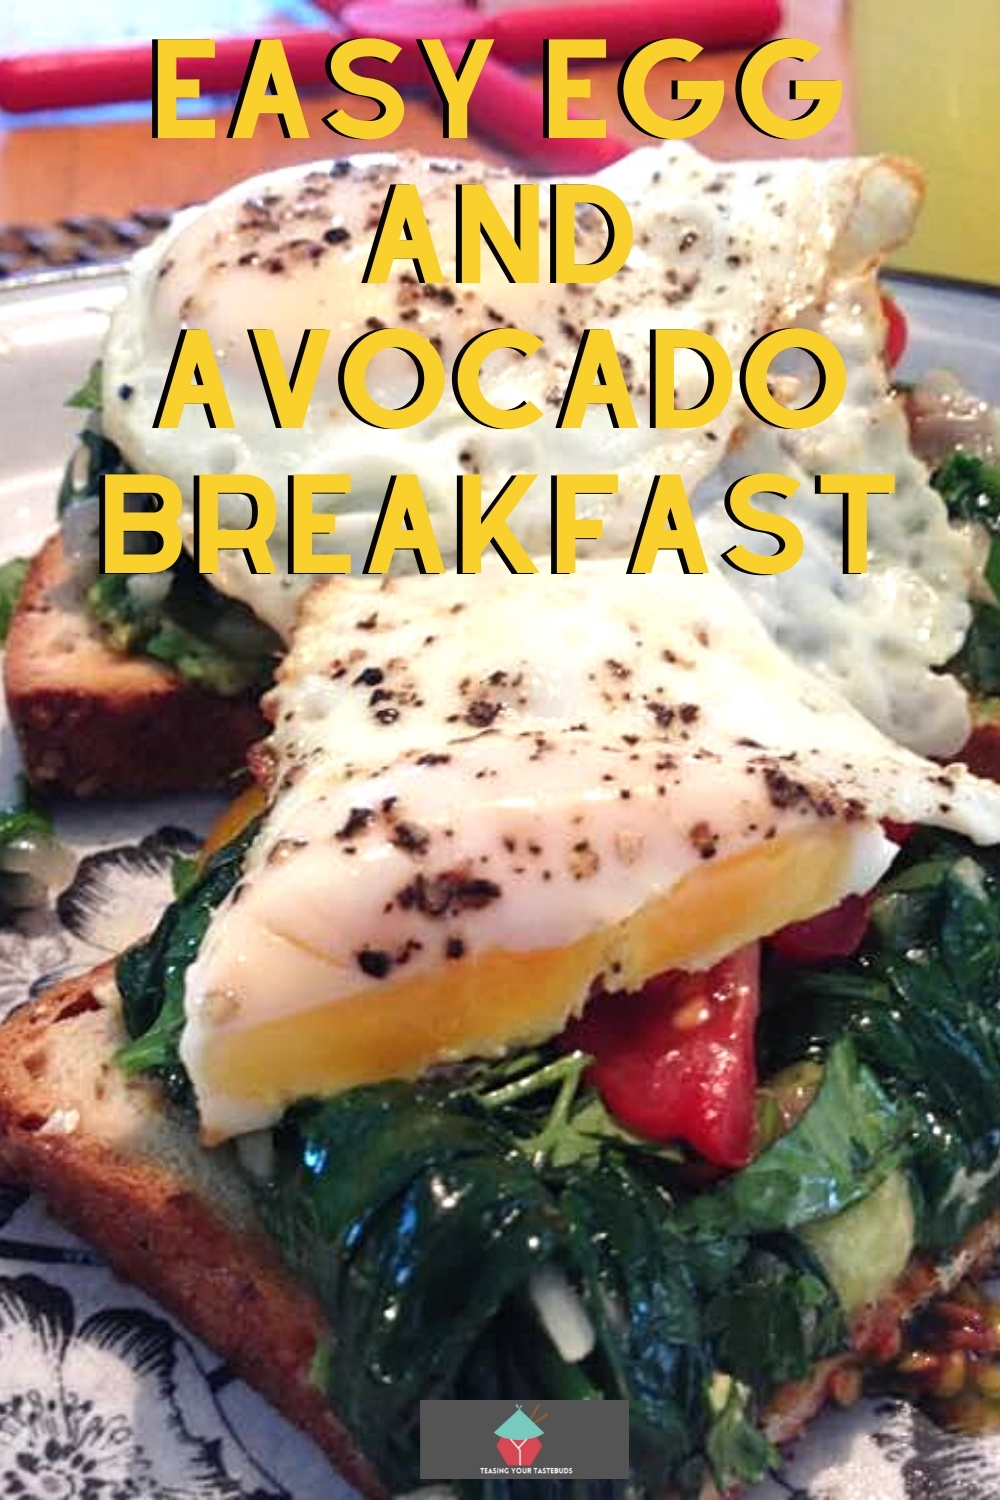 Easy Egg and Avocado Breakfast. A lovely recipe with layers of poached eggs, seasoned spinach, tomatoes and avocado on hot buttered toast